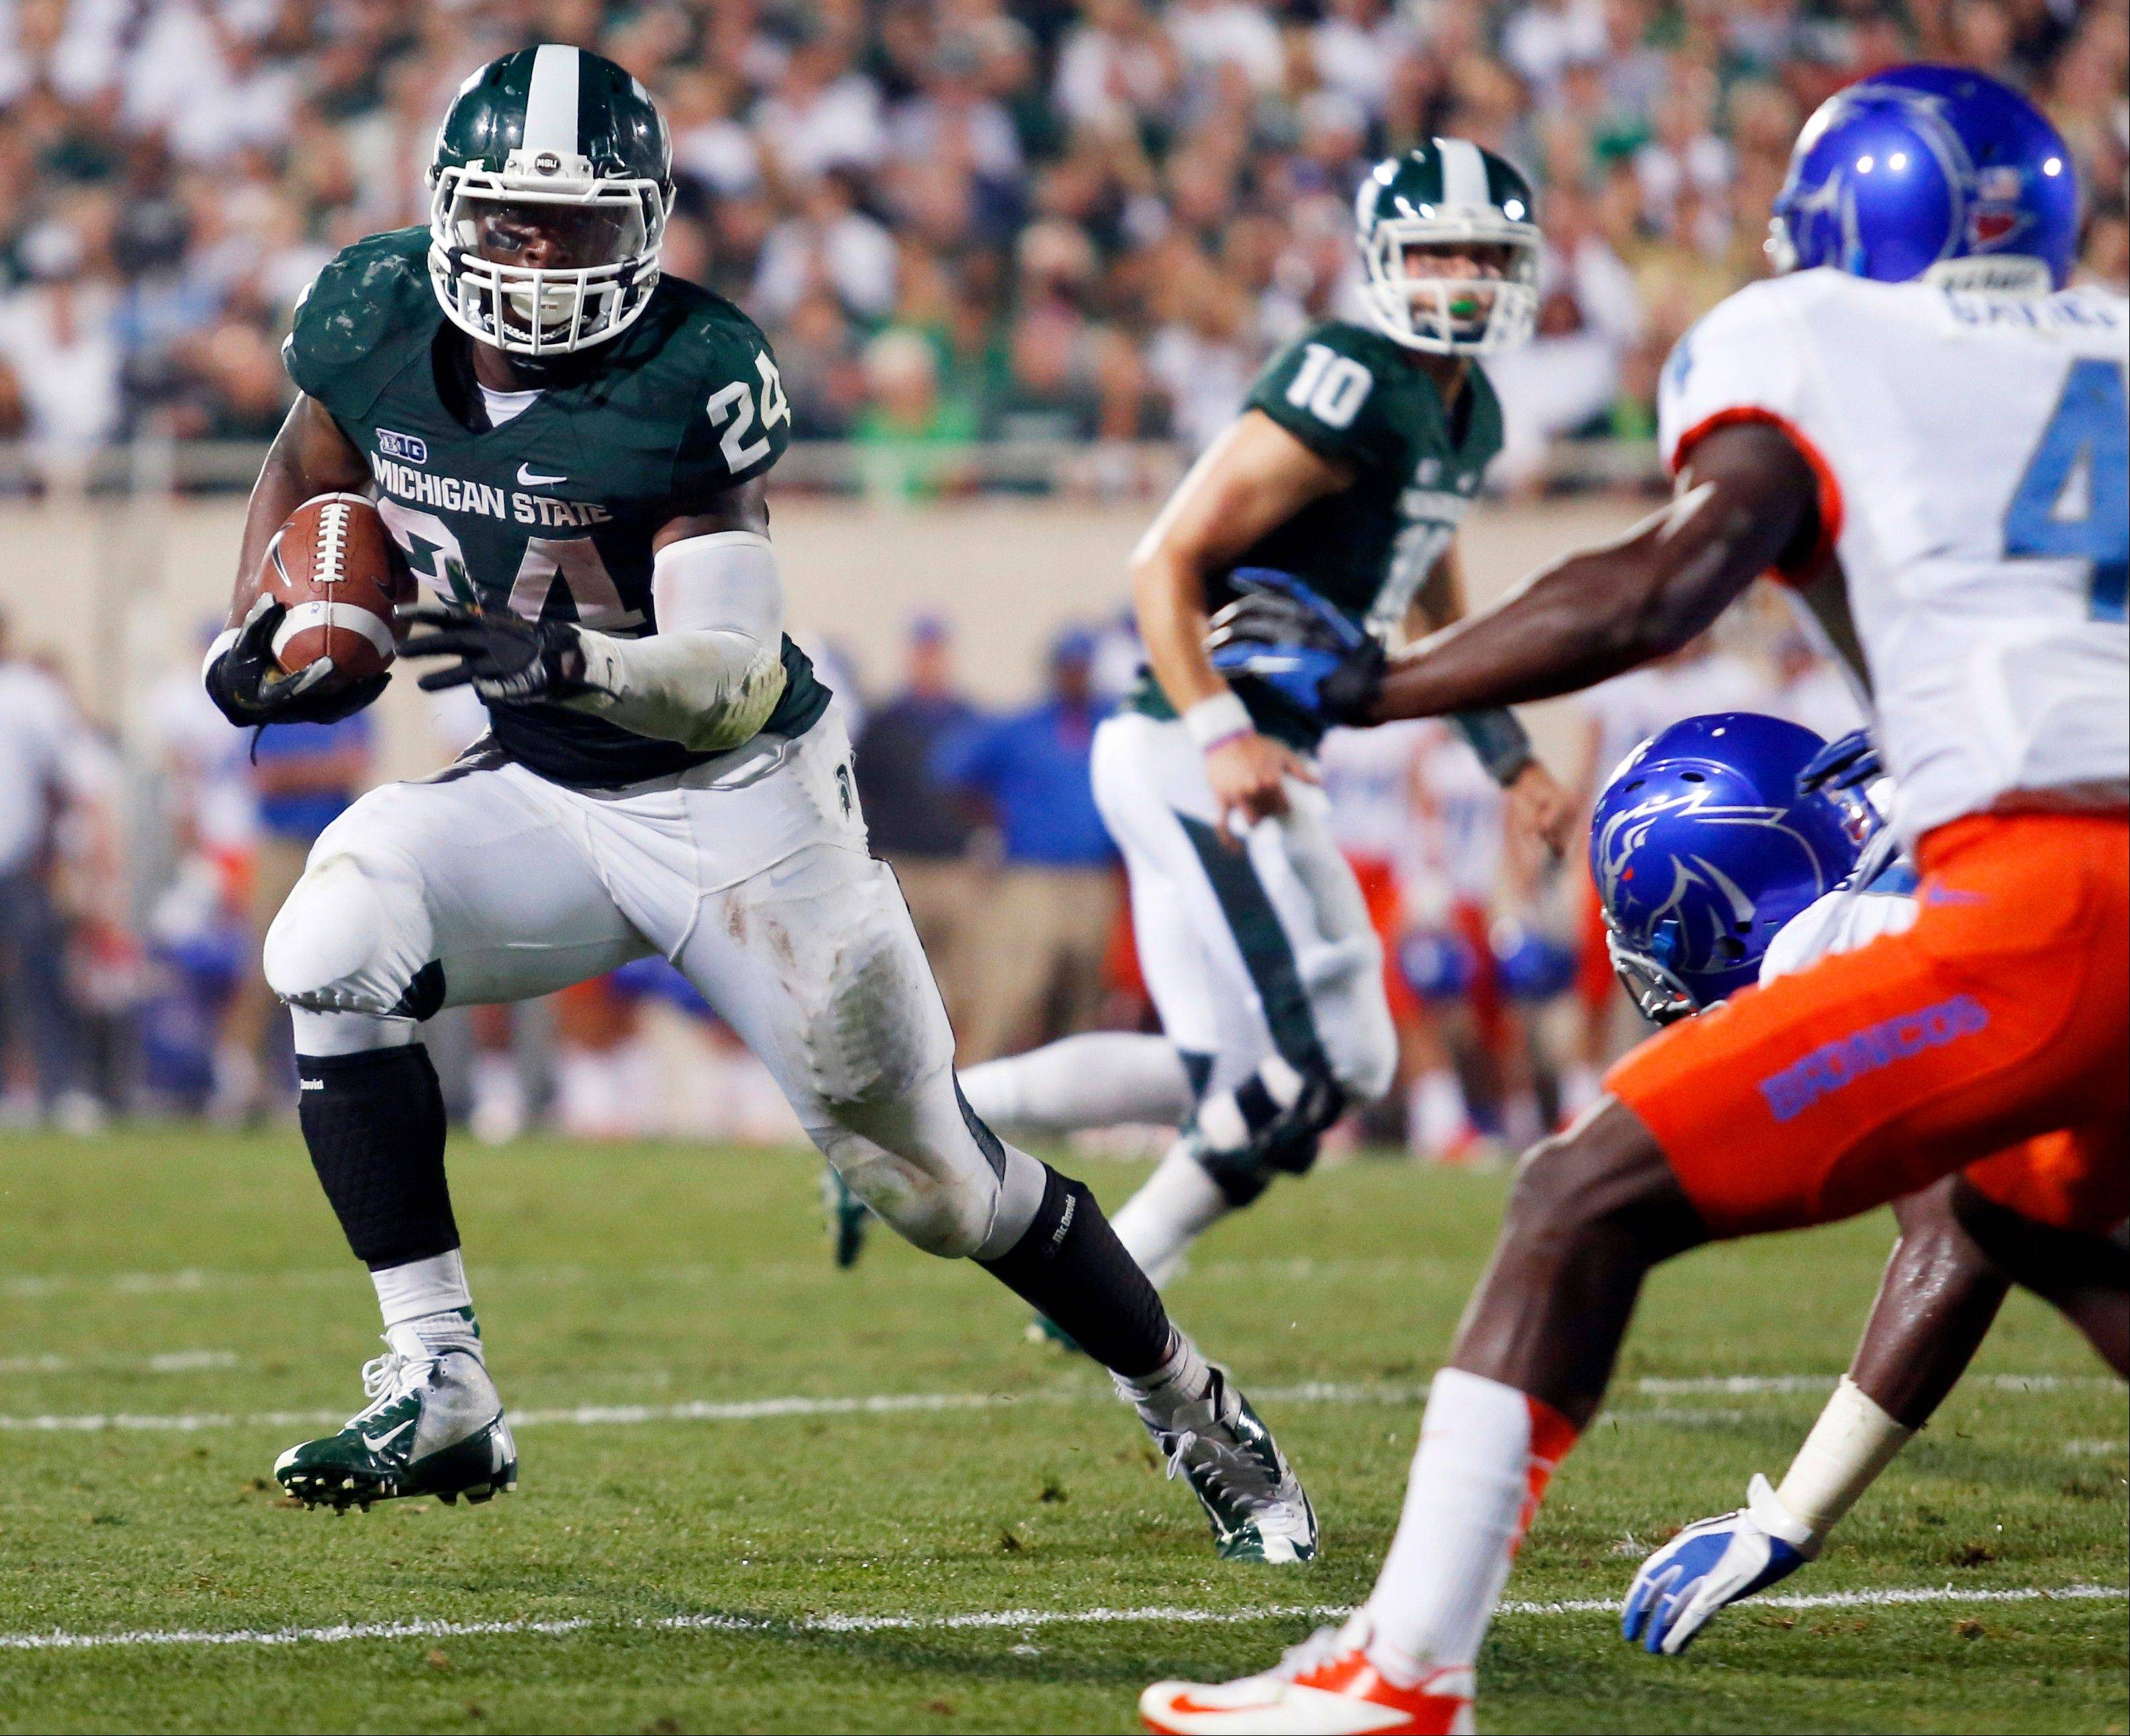 Michigan State's Le'Veon Bell gets past Boise State's Jerell Gavins to score the game-winning touchdown last Saturday in East Lansing, Mich.